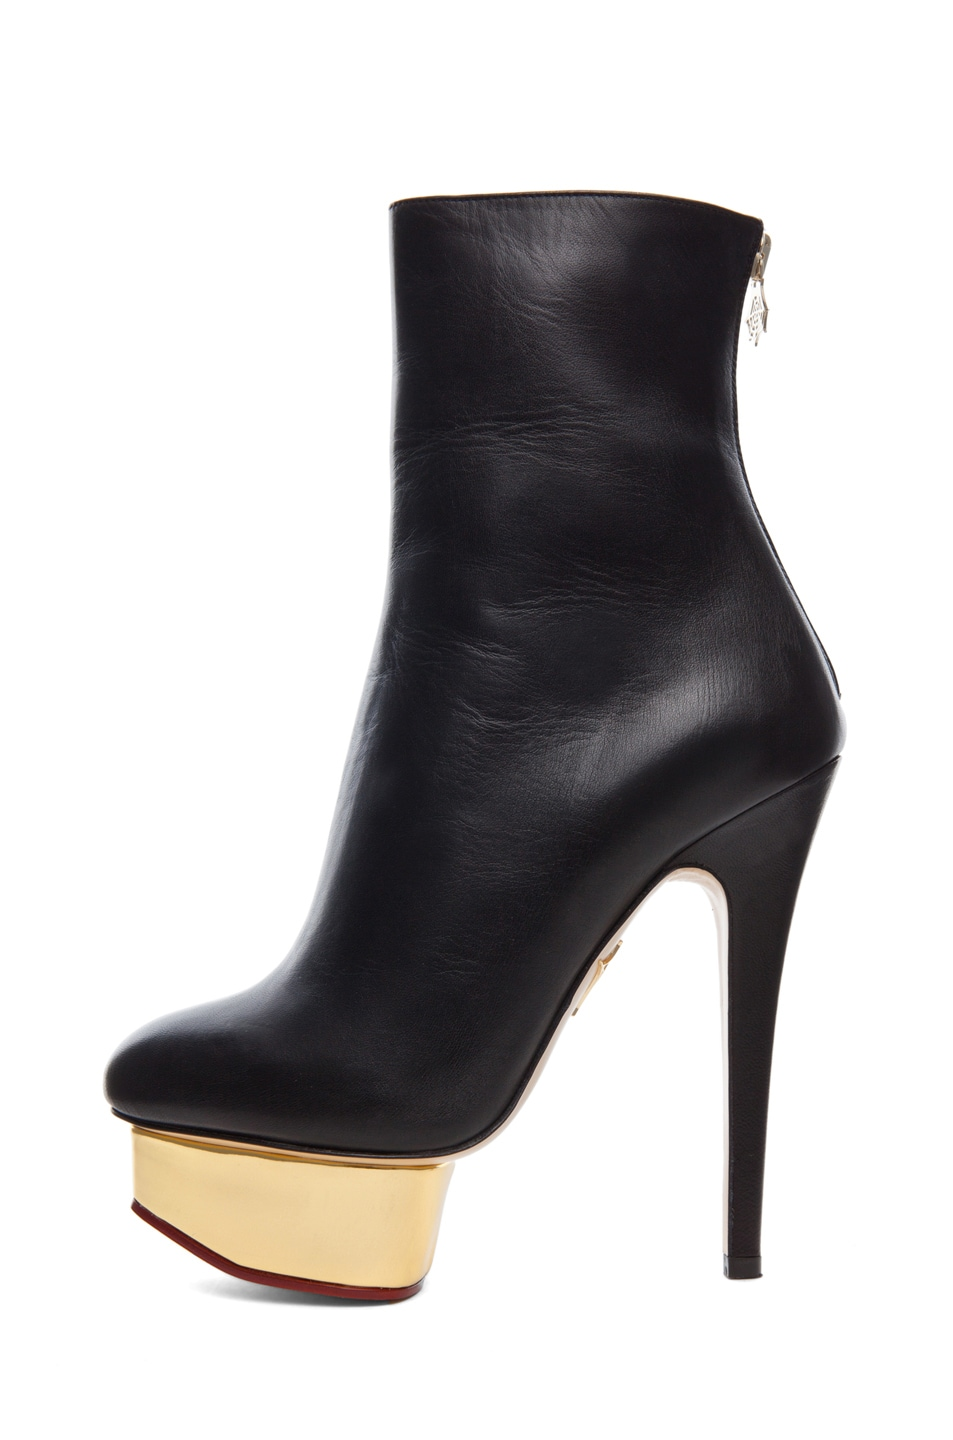 Image 1 of Charlotte Olympia Lucinda Signature Island Nappa Leather Booties in Black